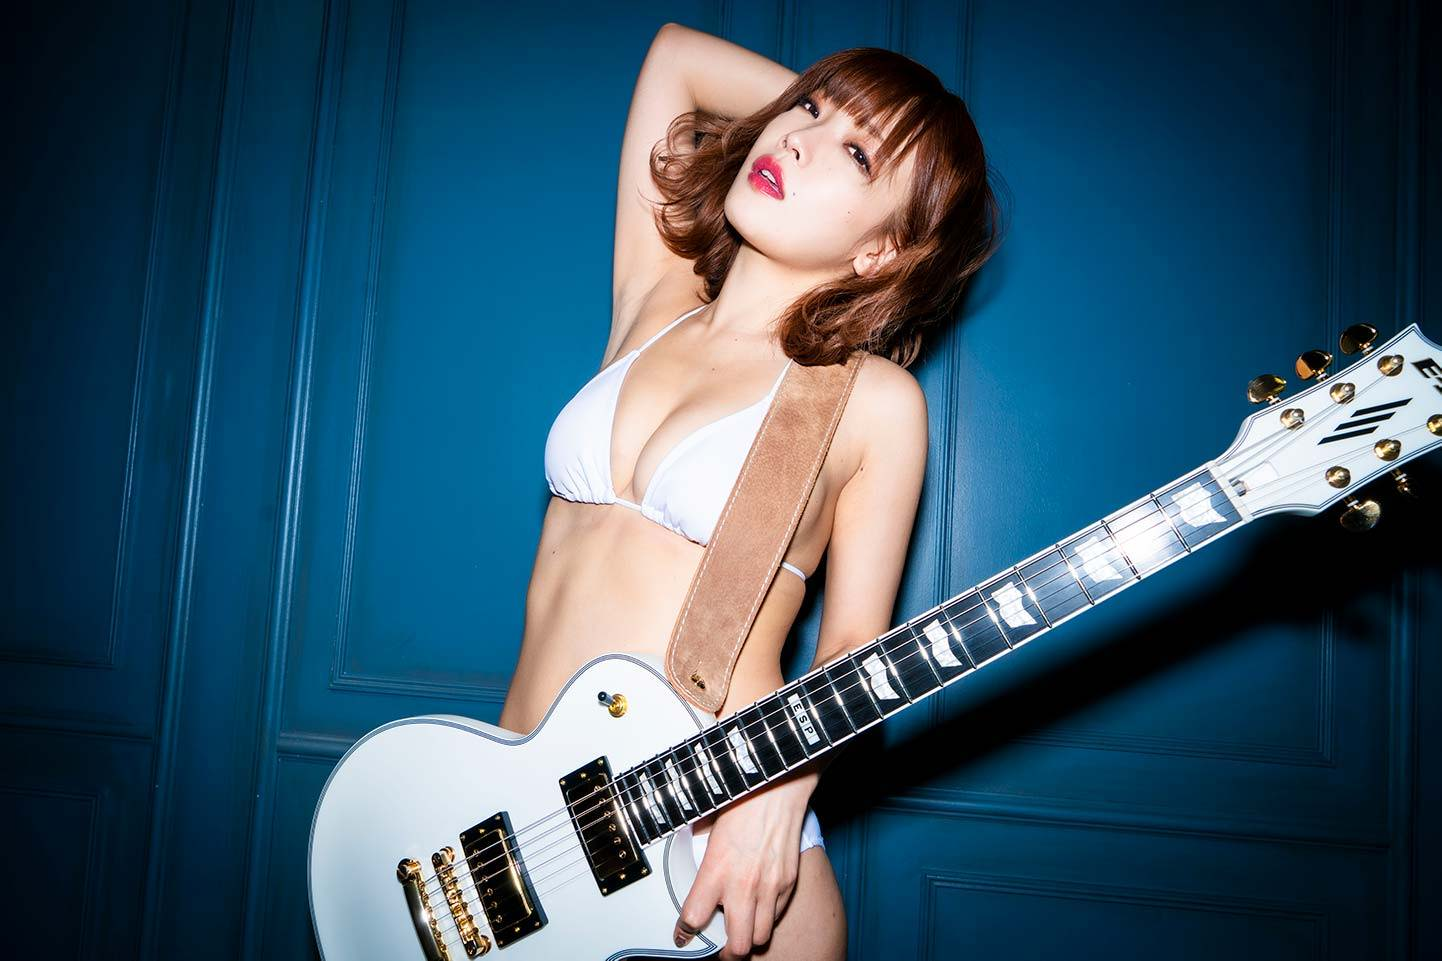 Ena Fujita 藤田恵名 bikini gravure idol singer songwriter Japanese